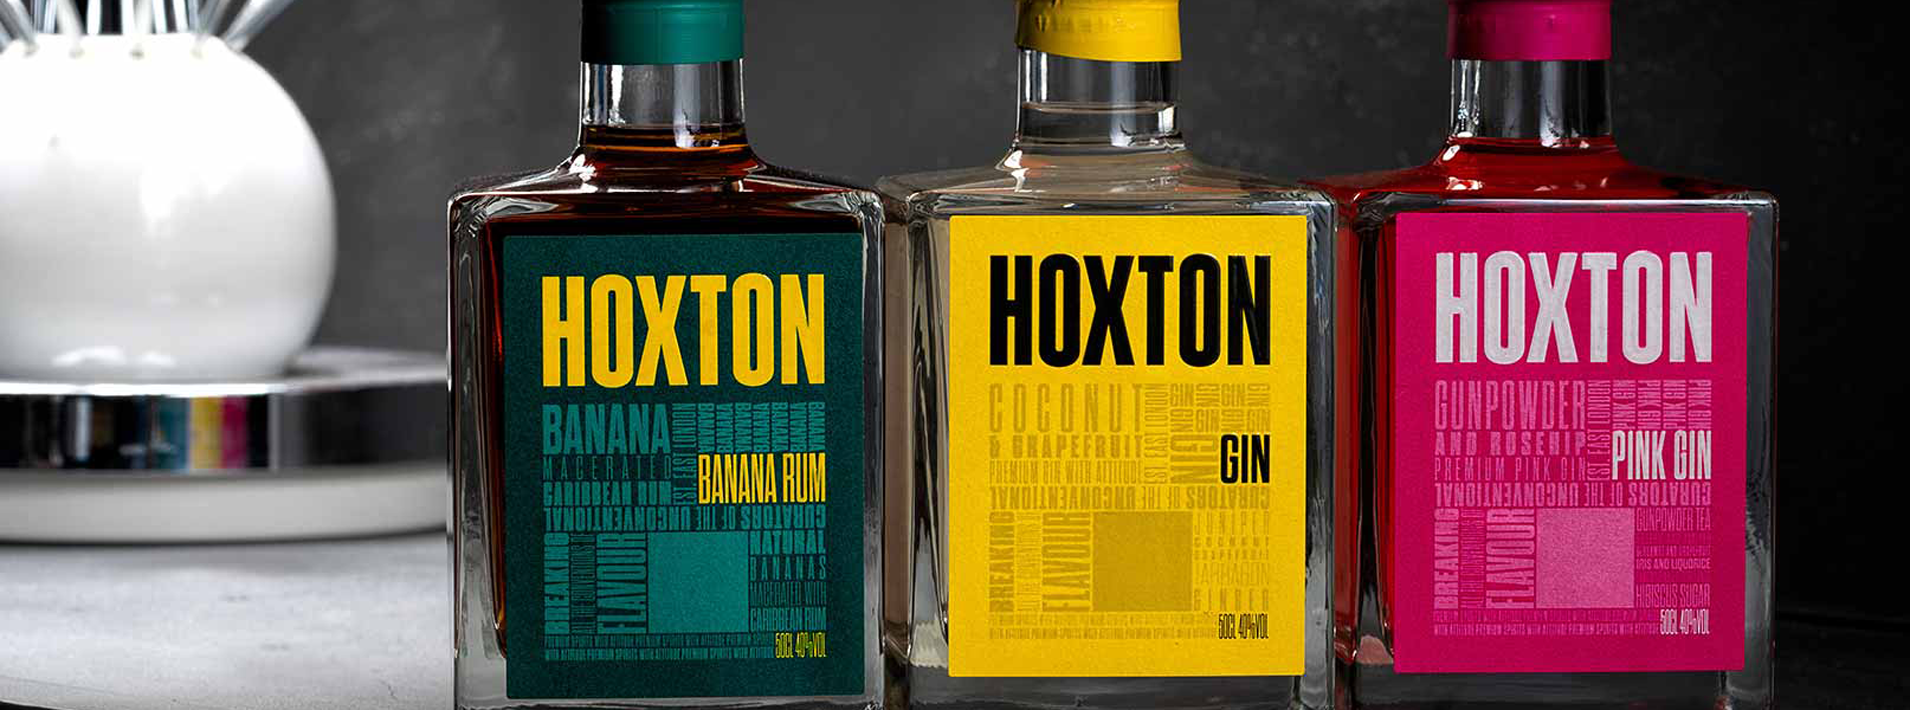 Hoxton Spirits London